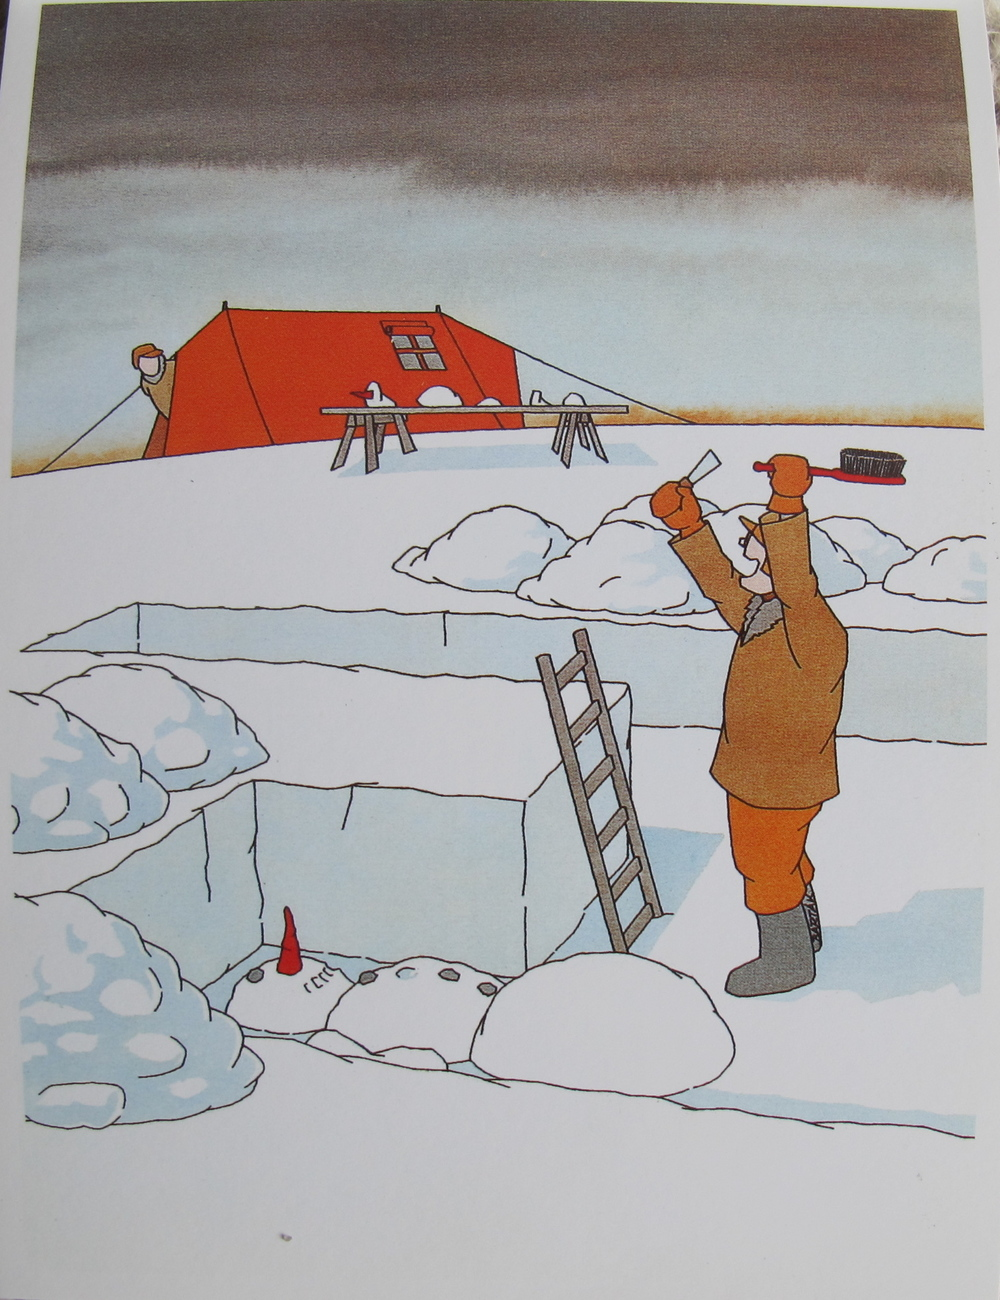 Look! I've discovered homo Frosty-cus! Where archaeology meets the Weather Channel, you get...a postcard by Czech cartoonist Miroslav Bartak. I have a small collection of them because I enjoy his Gary Larson sensibility. Bartak, now in his 70s, is a former seaman who decided to go ashore at age 30 and follow a childhood passion that his less artistically minded parents hadn't let him pursue. Good move.